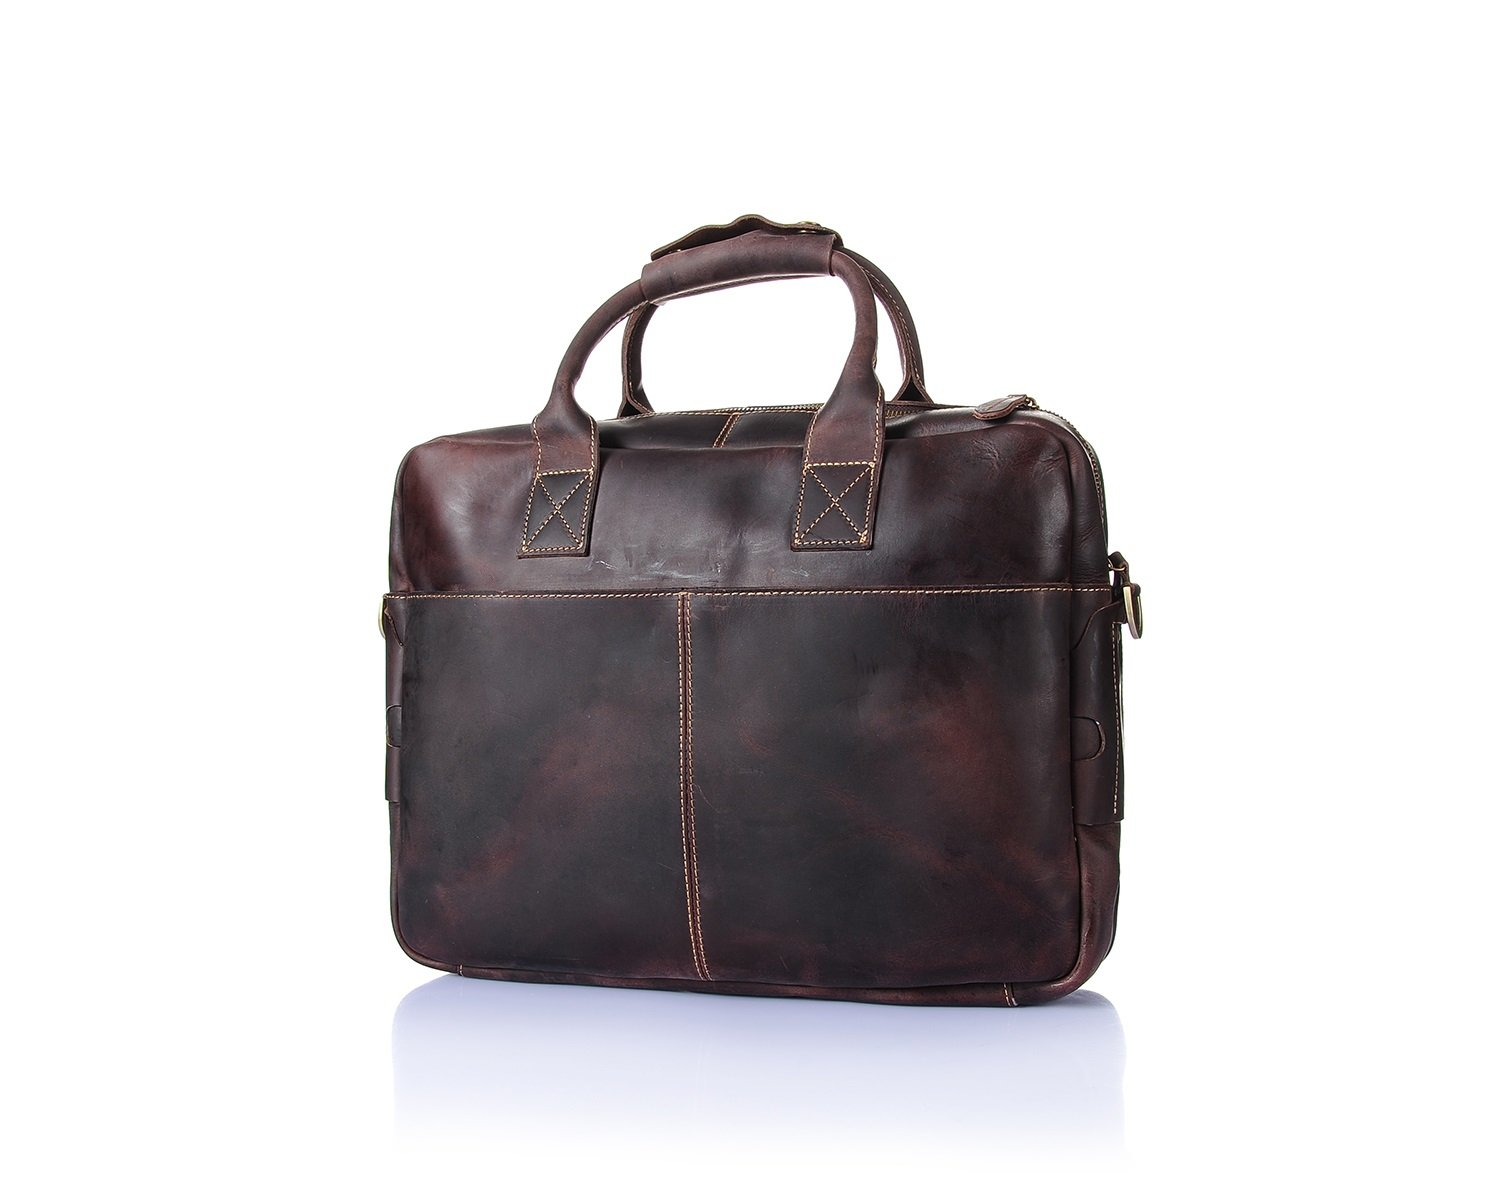 MUMUWU Men's Messenger Handbags Retro Crazy Horse Skin Leather Laptop Bag Handbag Briefcase (Color : Brown, Size : L)